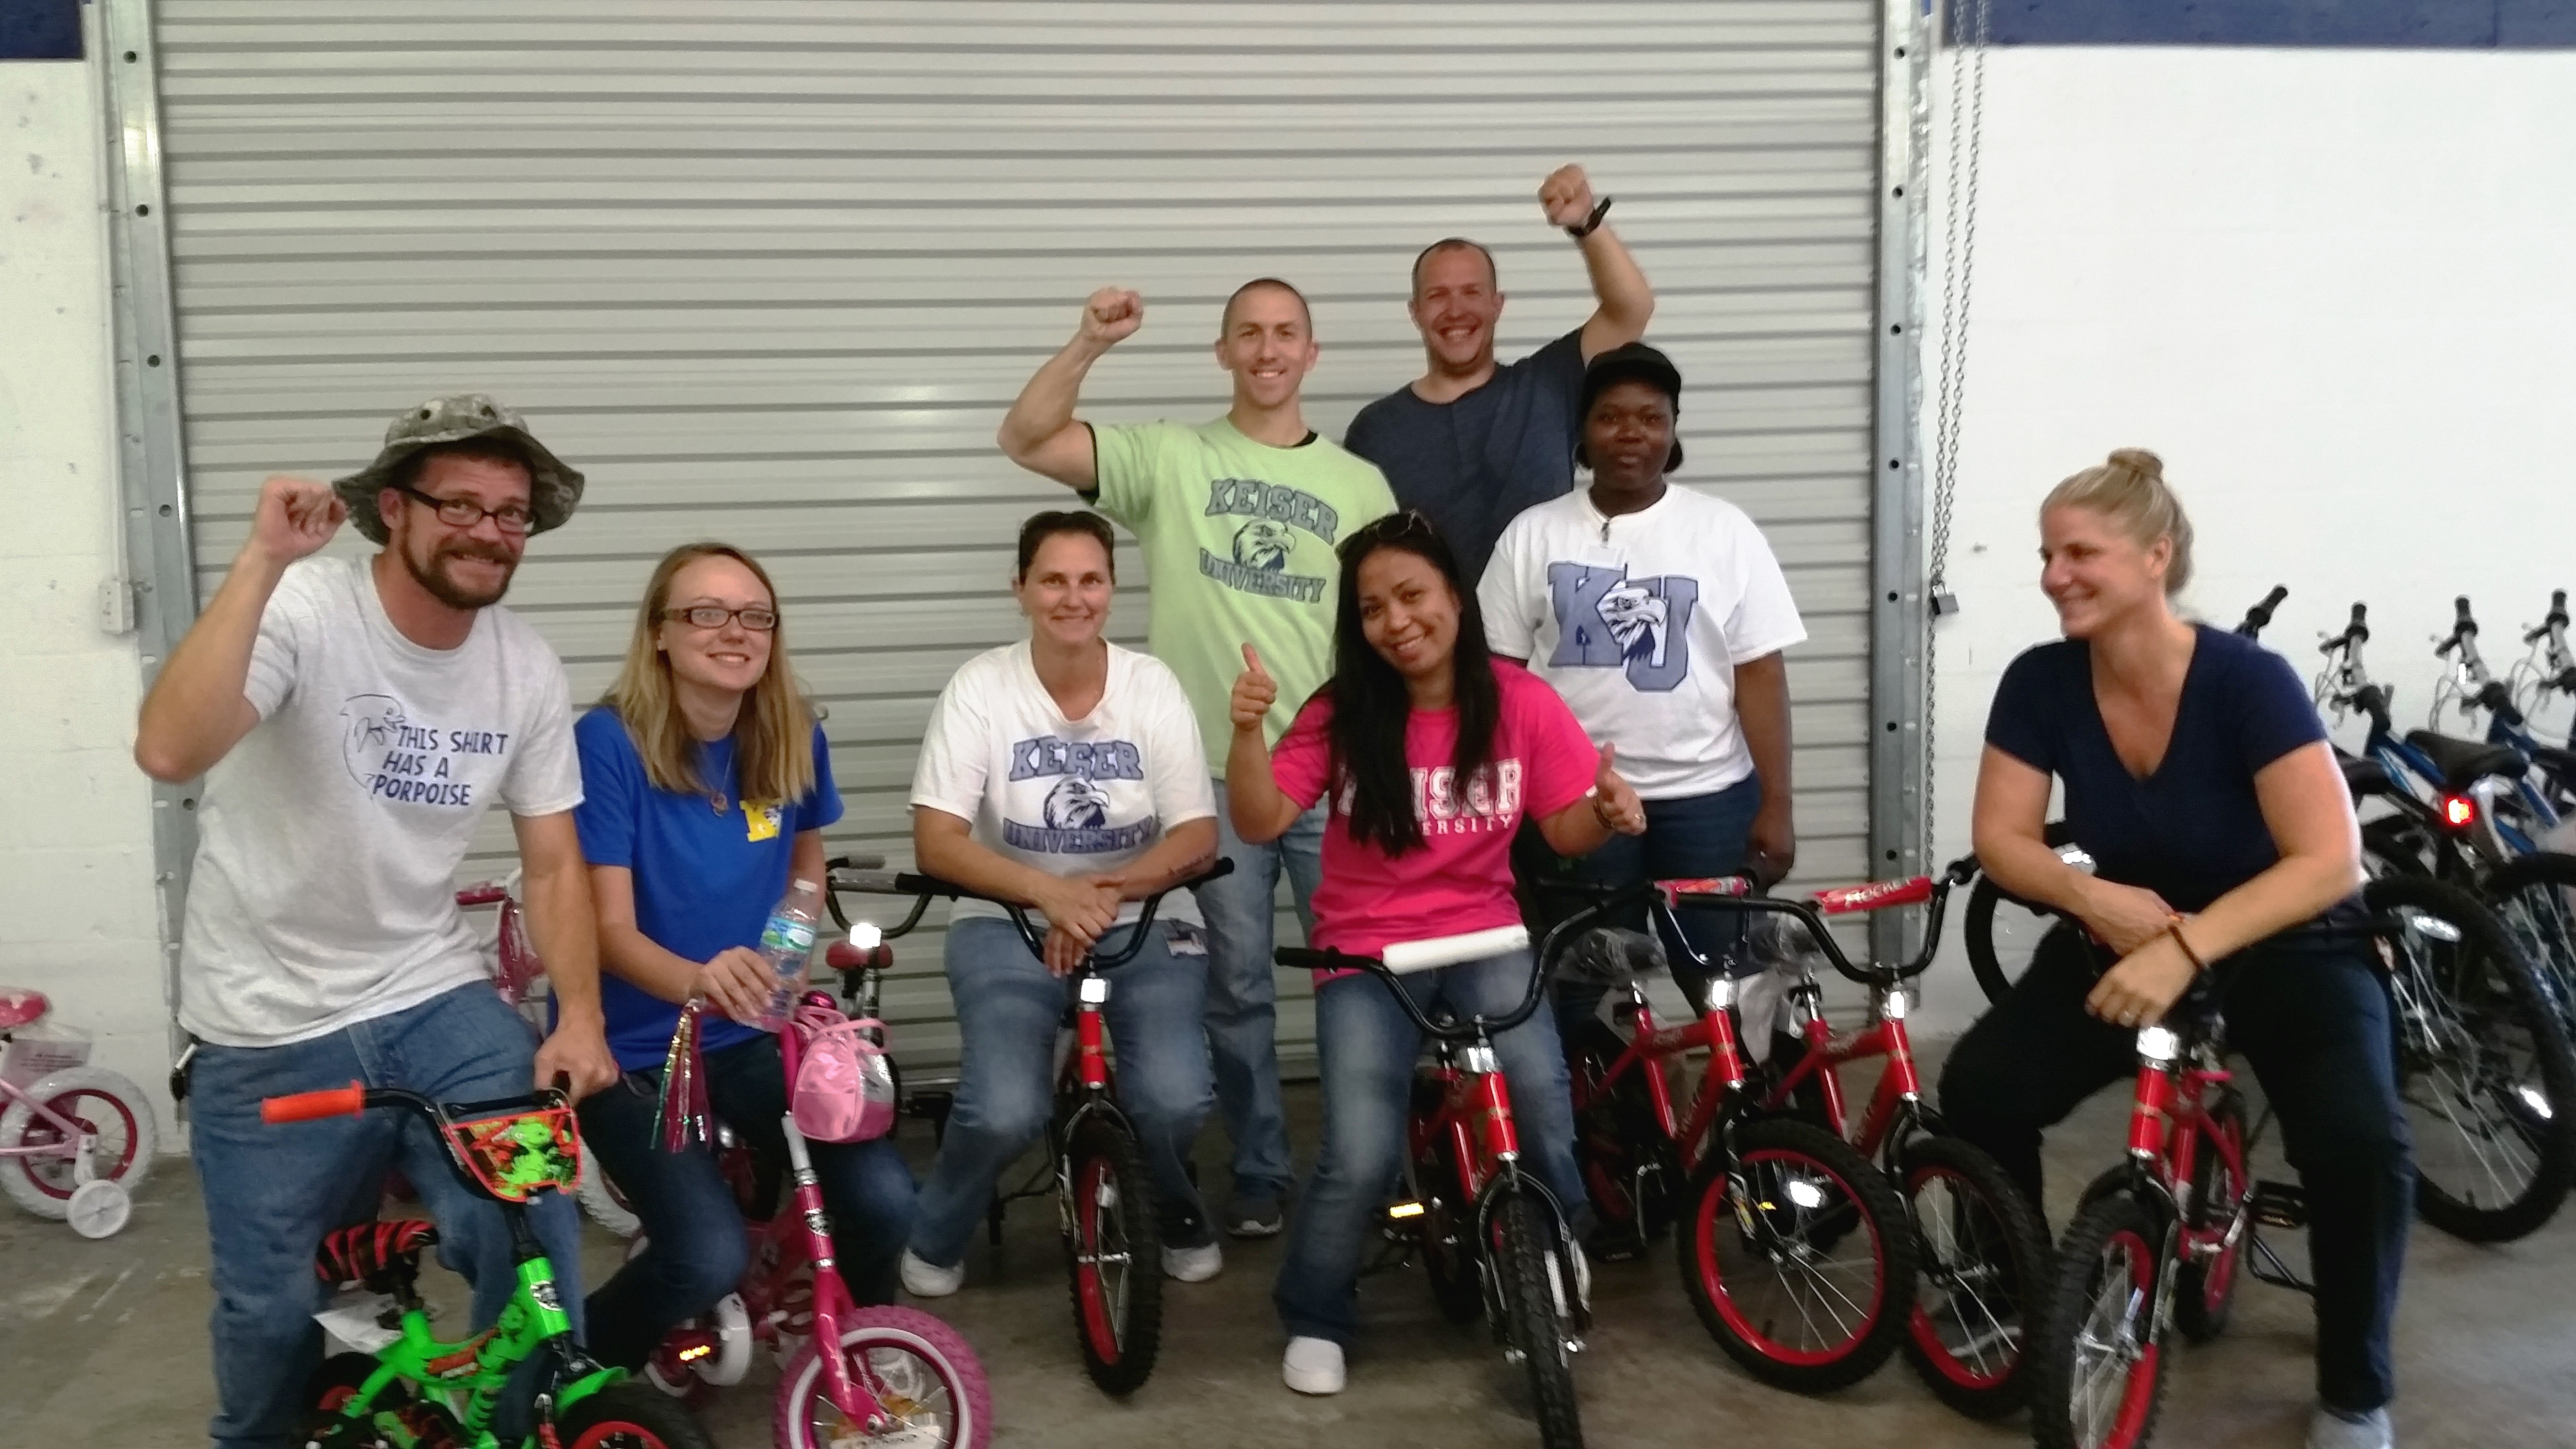 Speech Students from the Port St. Lucie Campus Volunteer at United Way